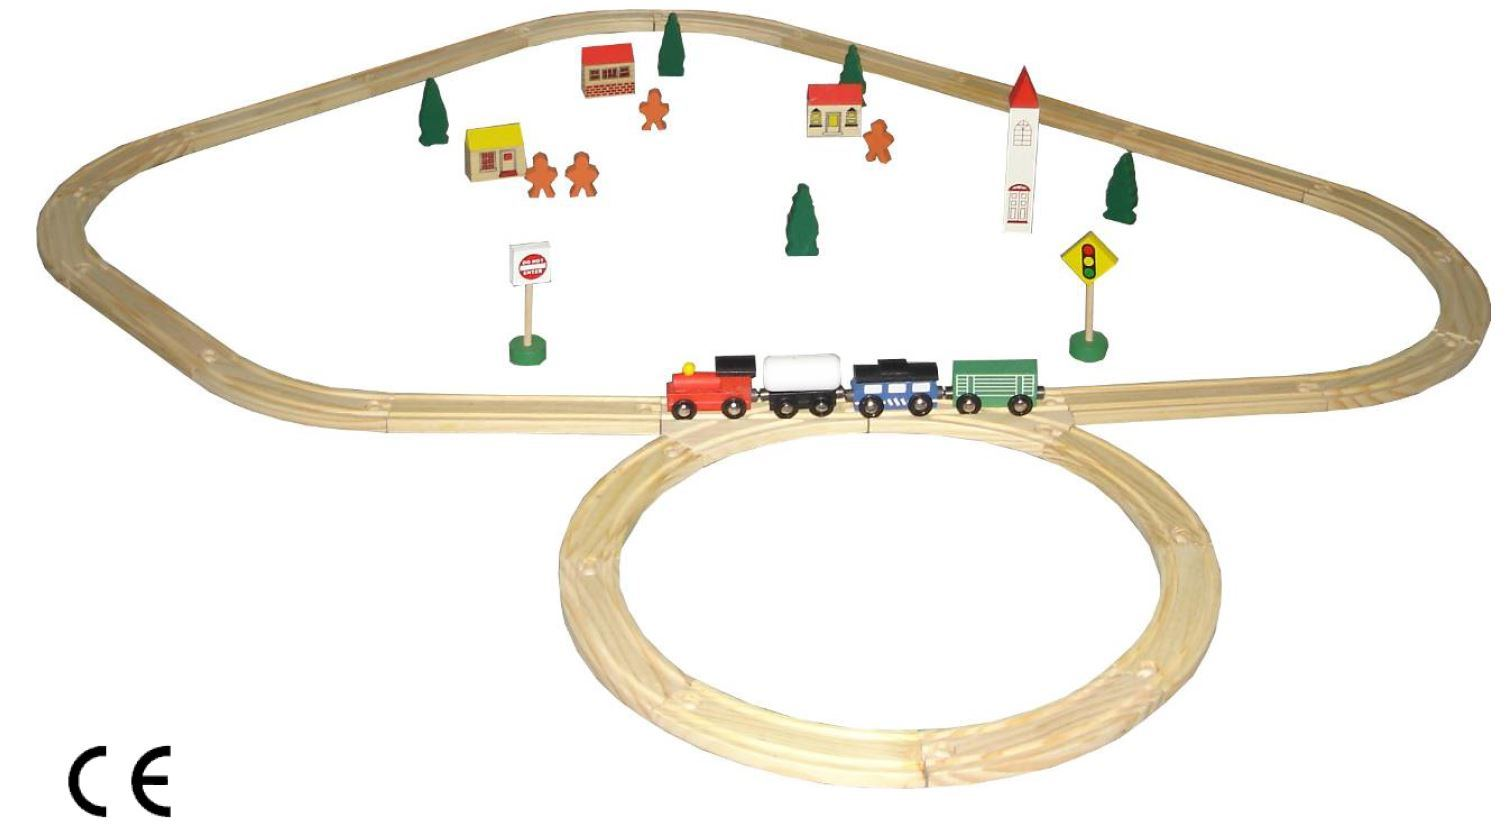 Wooden Toy Train Rail (19PCS) with En71 Certificate